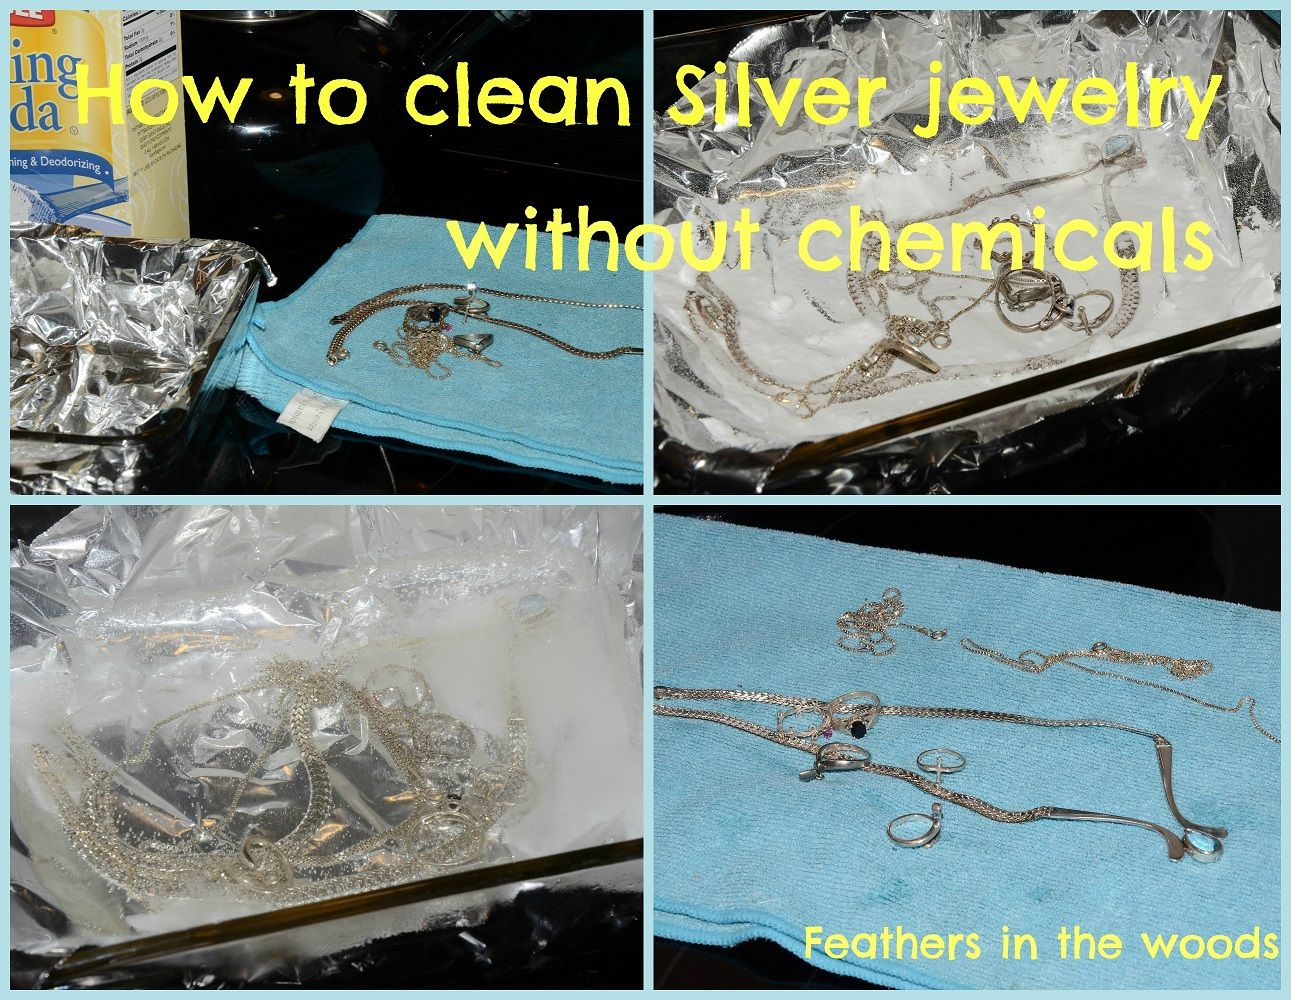 How to clean Silver without chemicals #Baking-Soda, #Cleaning, #Jewelry, #Silver #Solving-Problems